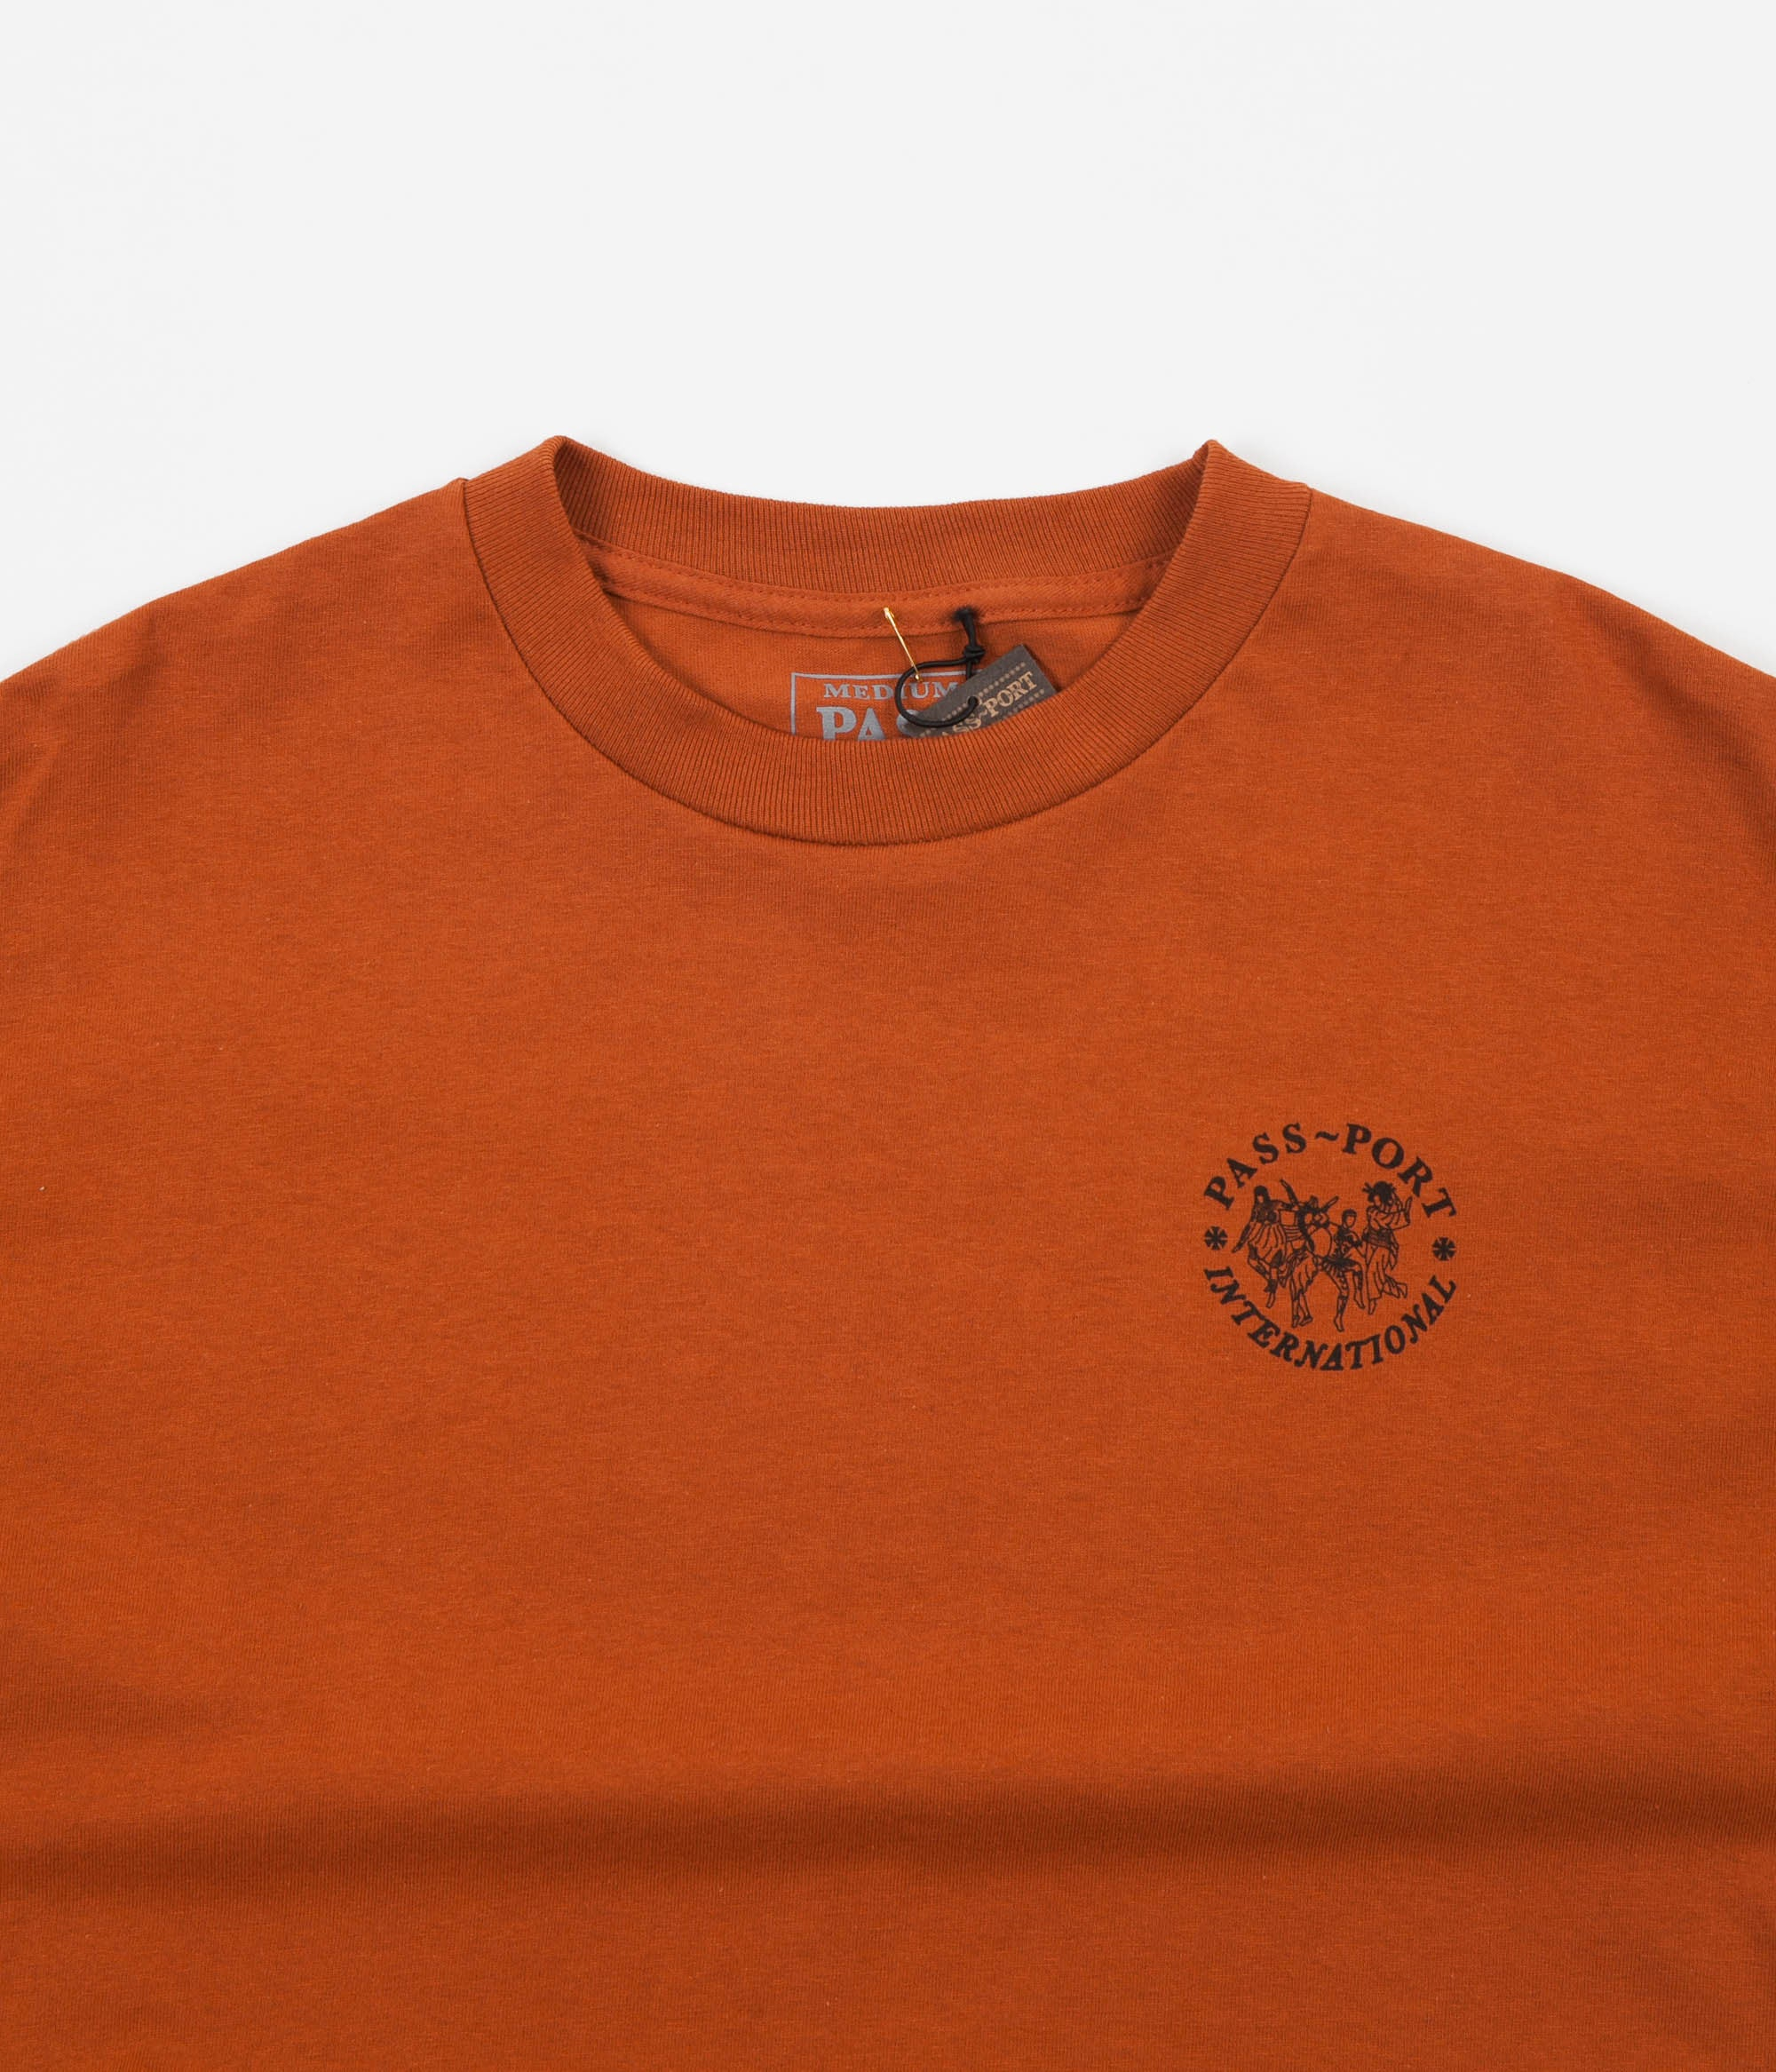 Pass Port International Ladies Long Sleeve T-Shirt - Orange